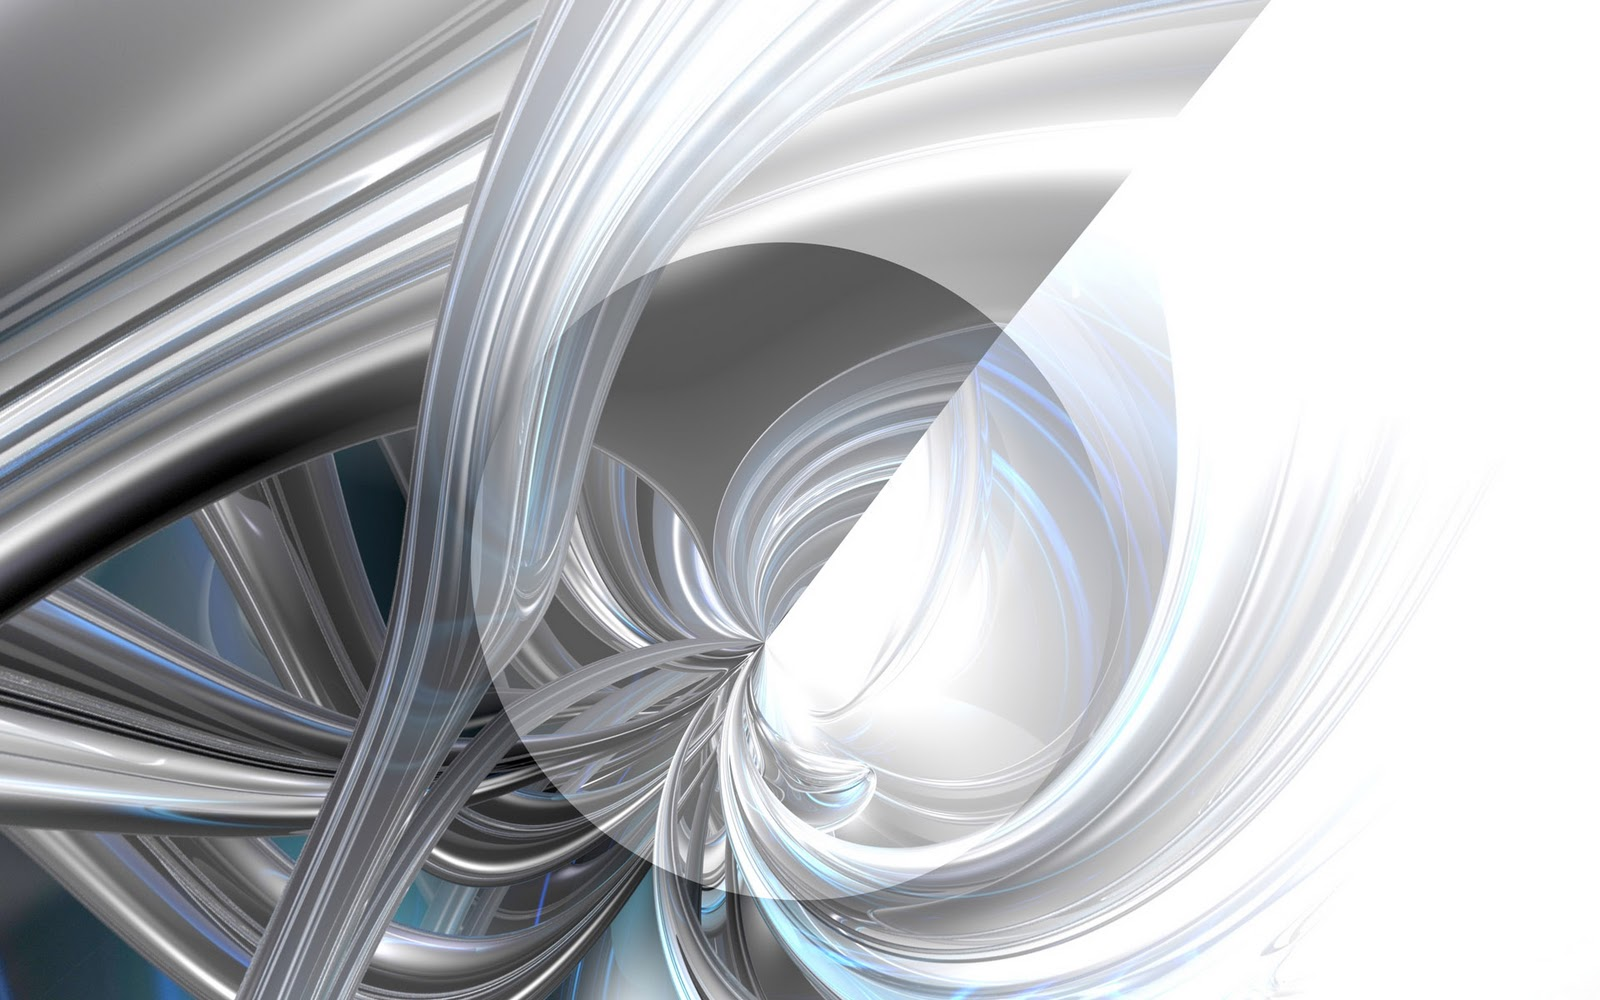 Abstract grey 3d wallpaper 05 the wallpaper database for Grey 3d wallpaper